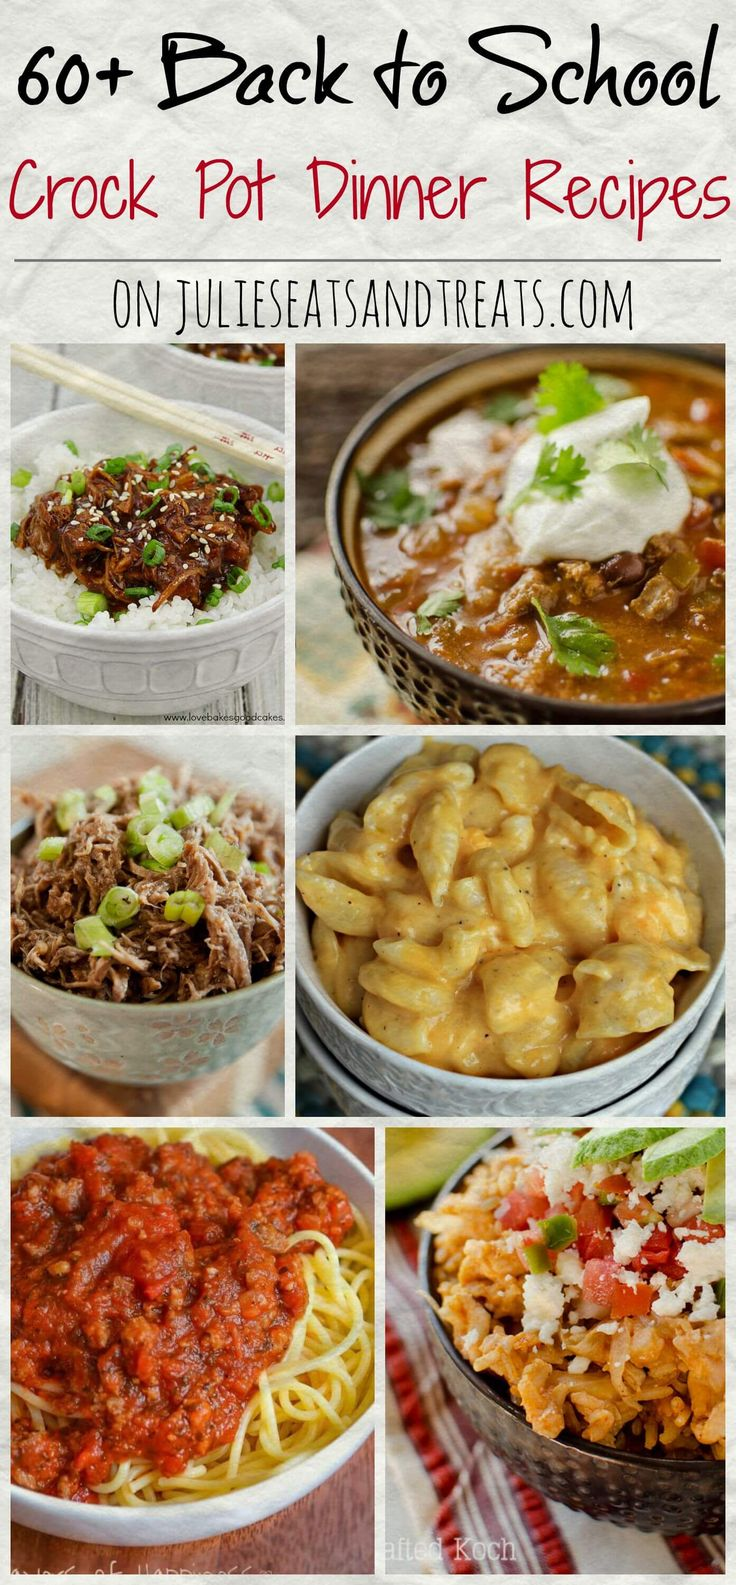 60+ Crock Pot Dinner Recipes ~ Tons of easy recipes perfect for any busy family when you need to get dinner on the table fast!